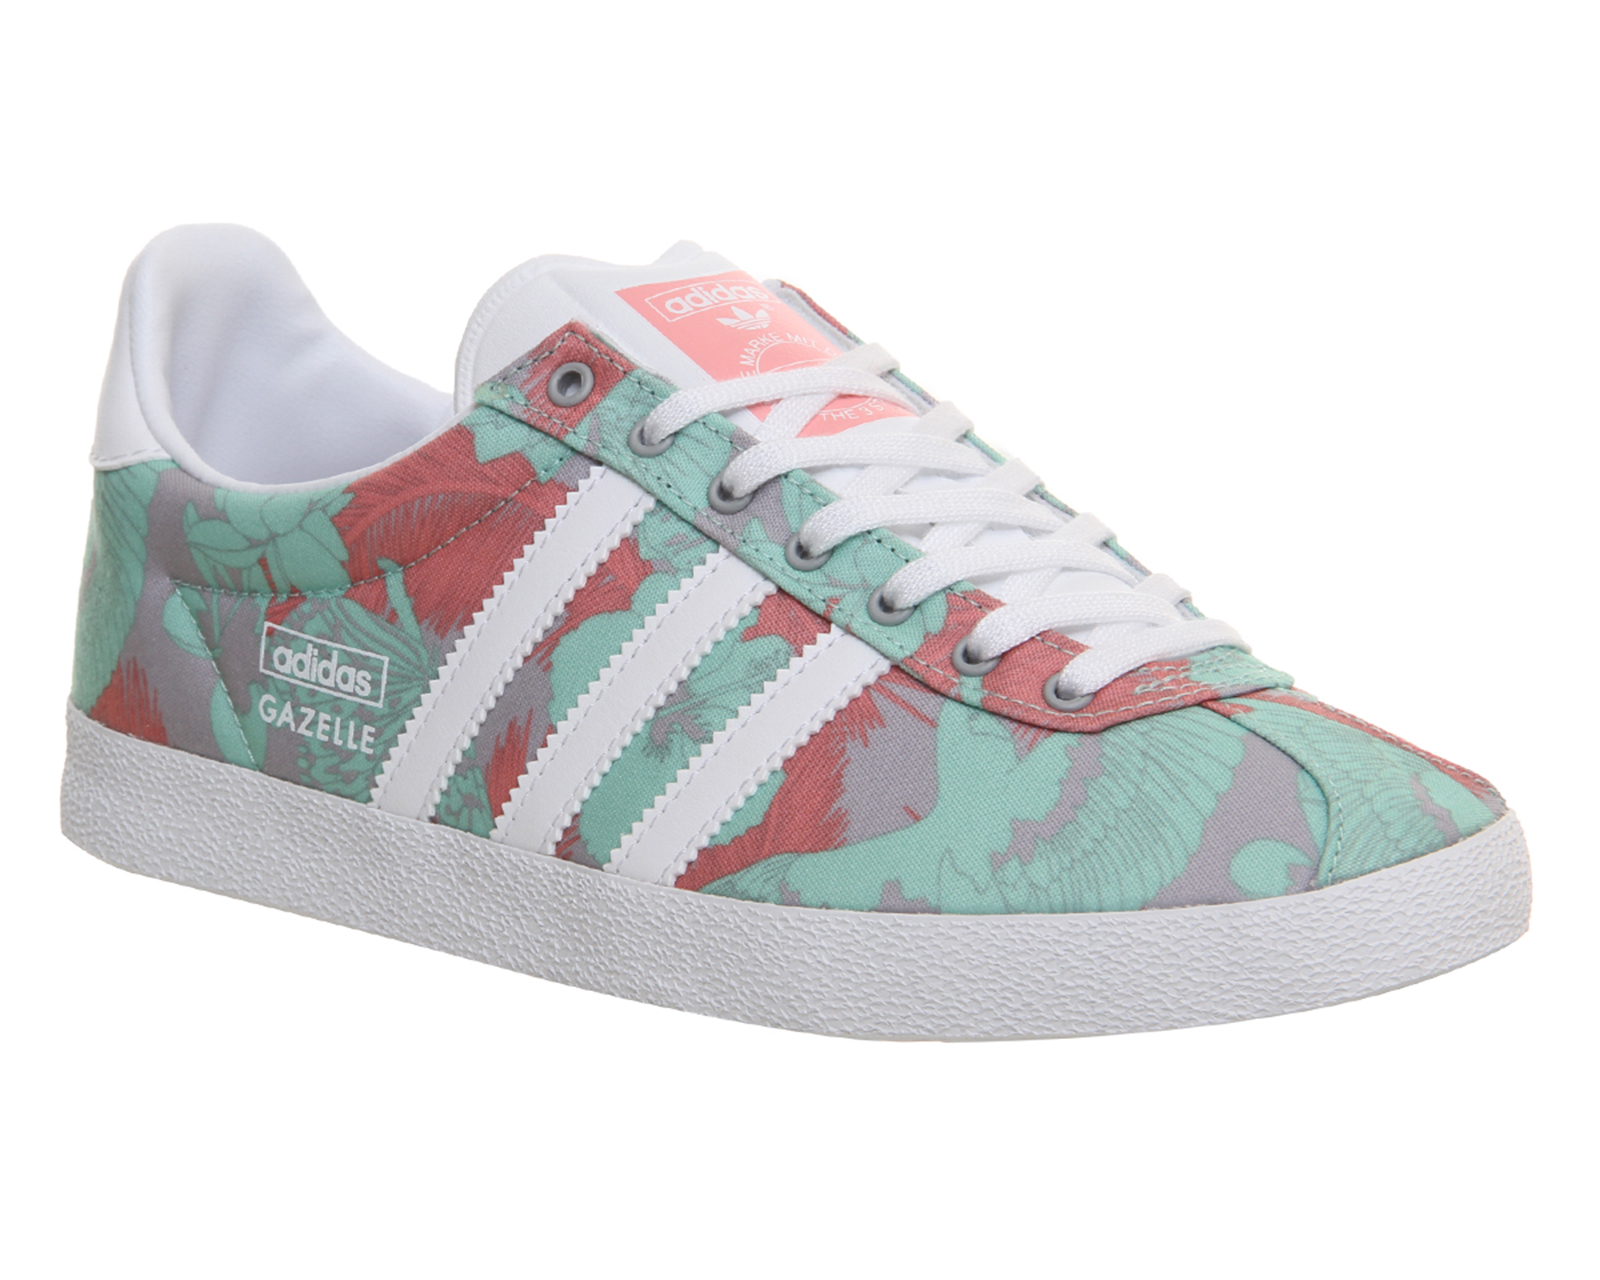 adidas gazelle og w onyx white pink print trainers shoes ebay. Black Bedroom Furniture Sets. Home Design Ideas